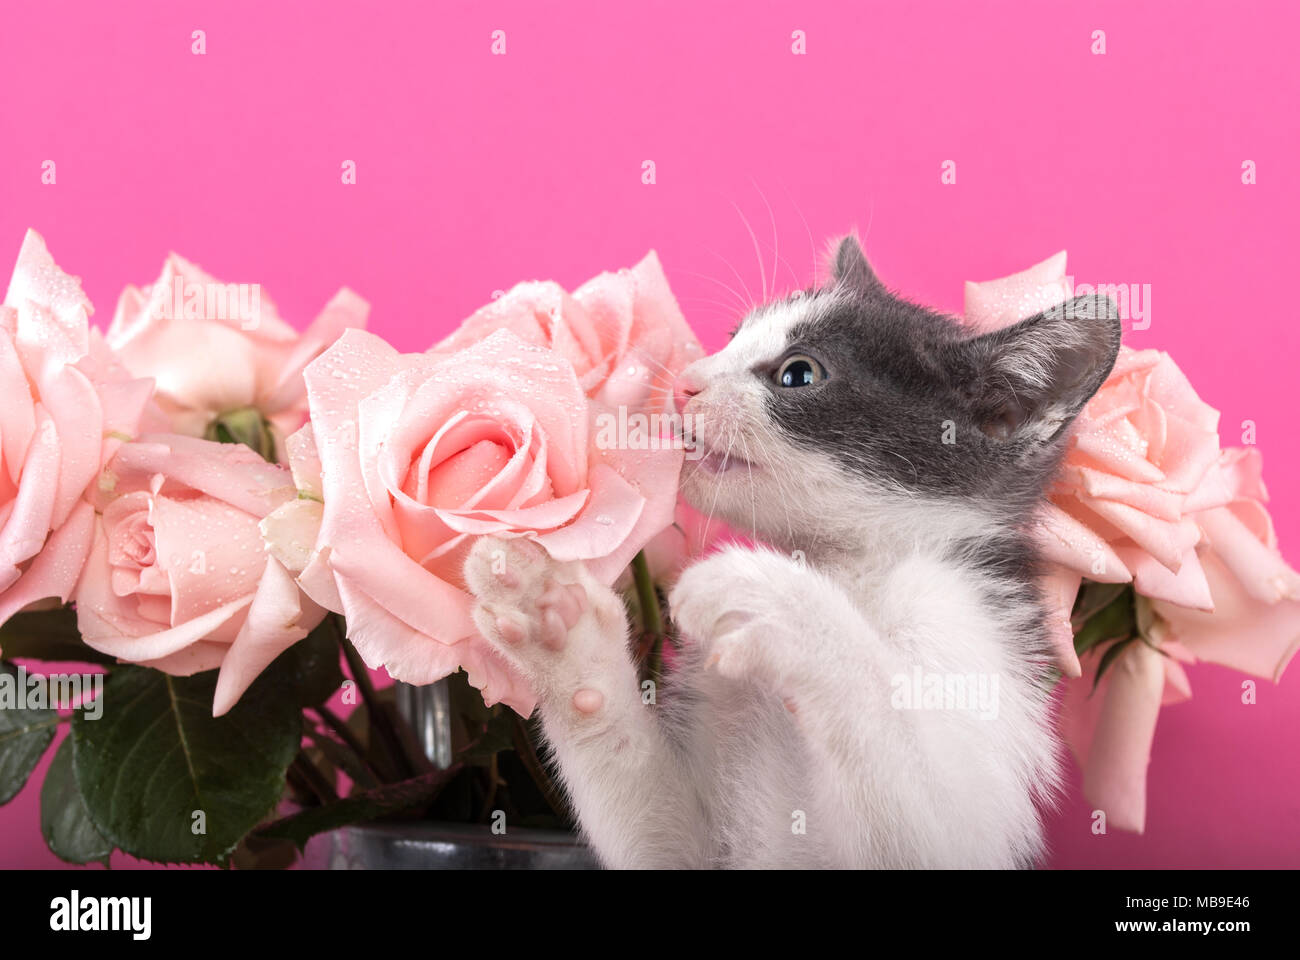 Small cat bites flower roses on a pink background stock photo small cat bites flower roses on a pink background mightylinksfo